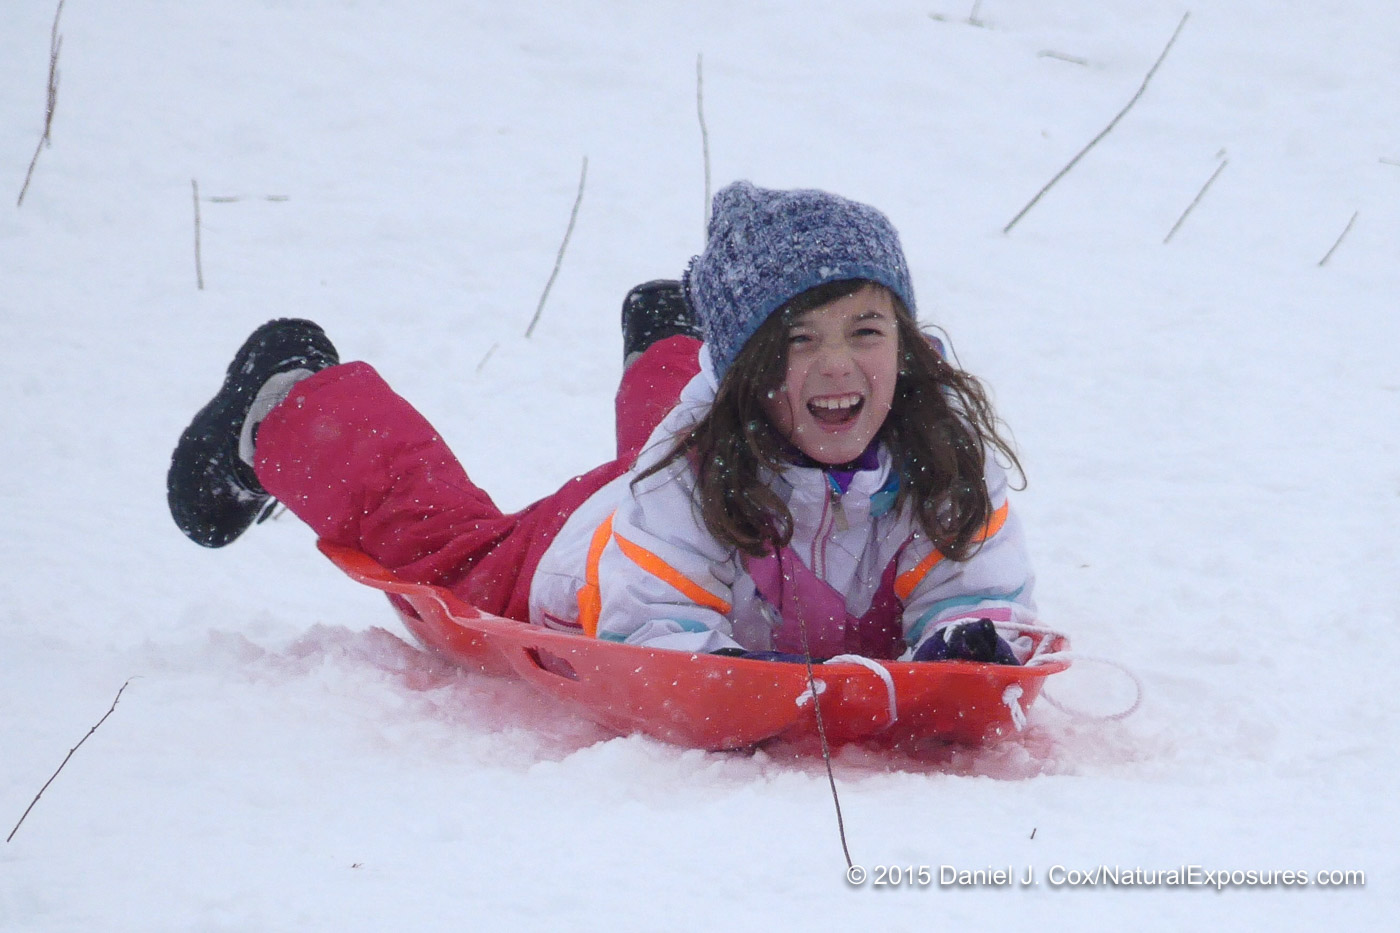 Isabella sledding on Pete's Hill. Bozeman, Montana FZ300 in 4K Photo Mode.